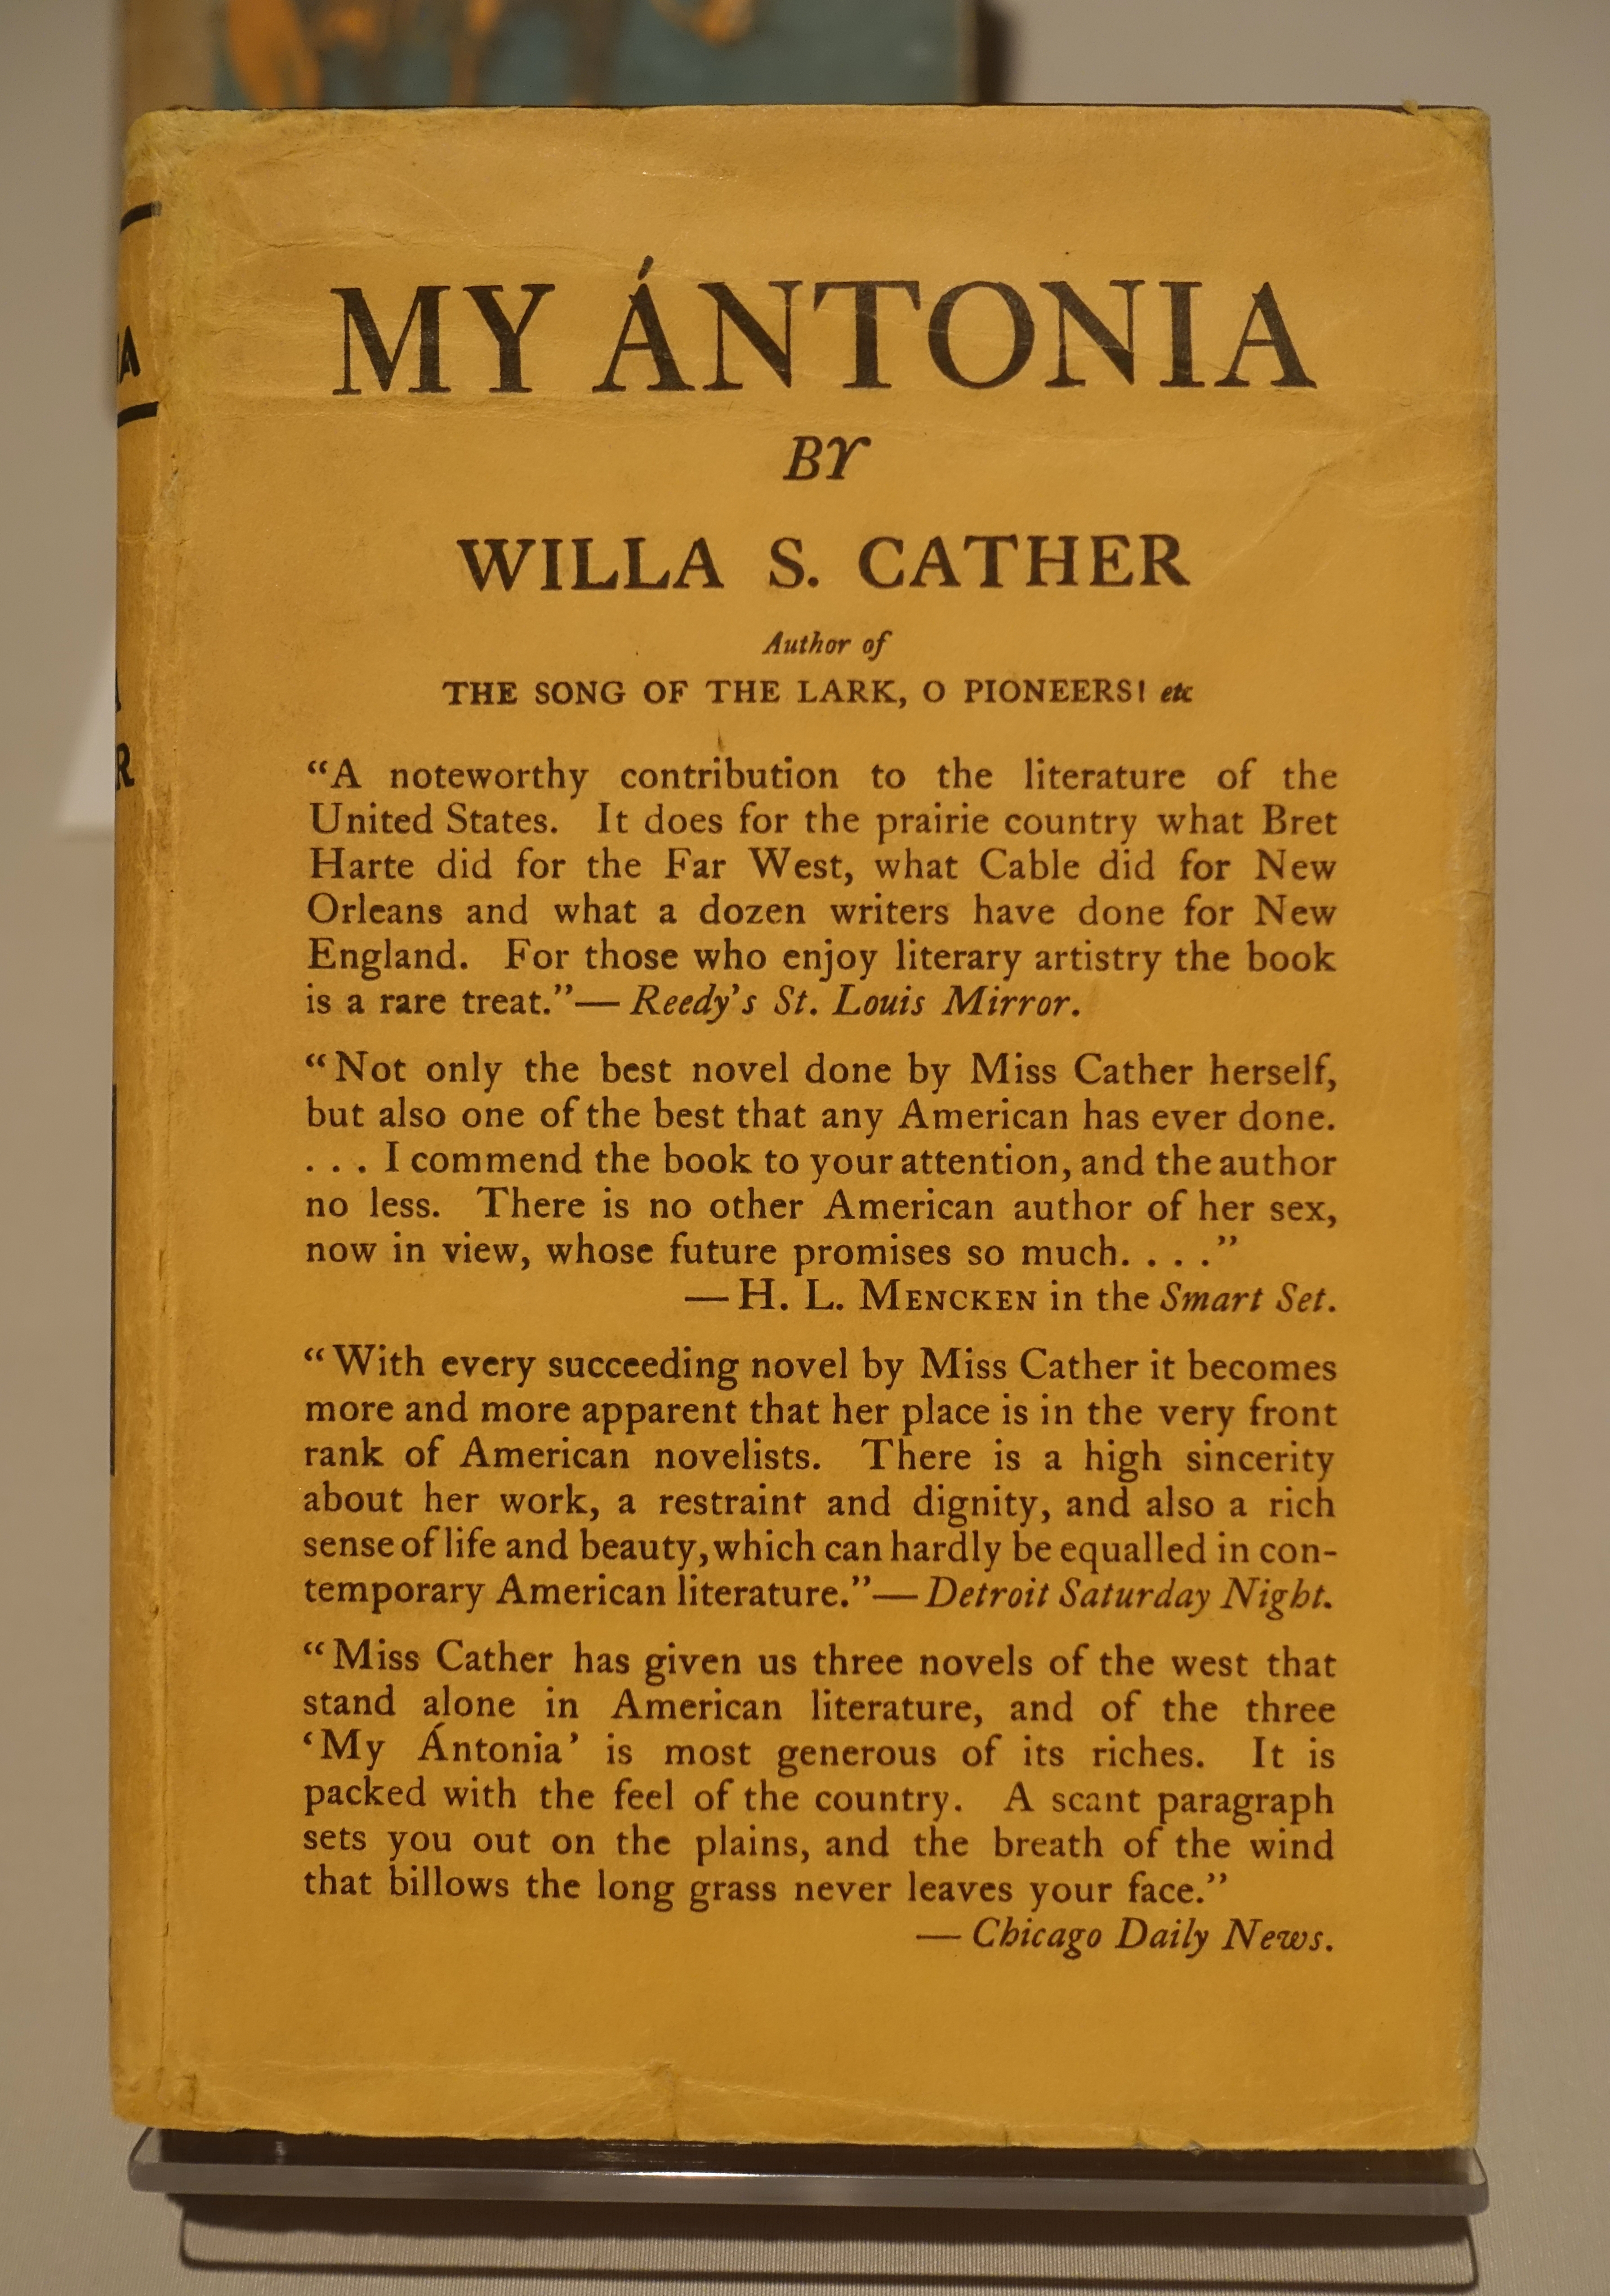 Winter reads: My Ántonia by Willa Cather